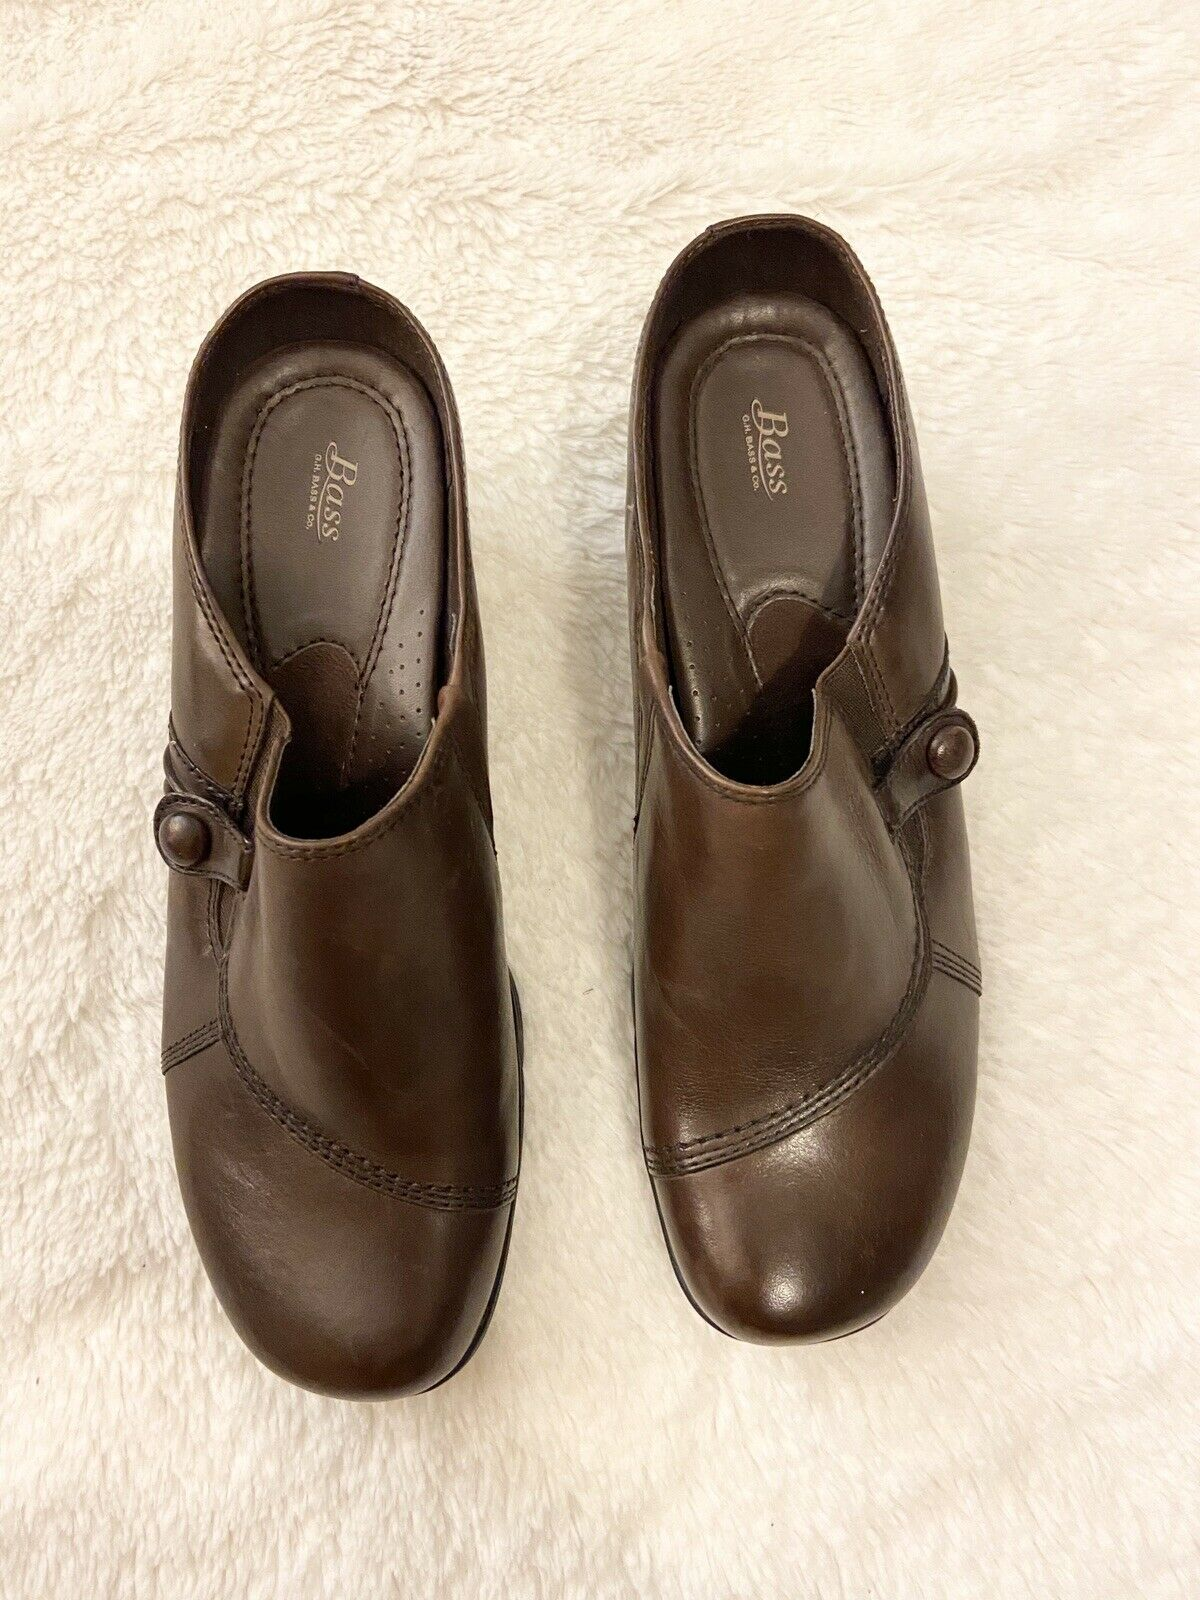 NWOT Bass Bryanna brown leather clogs mules Career Shoes